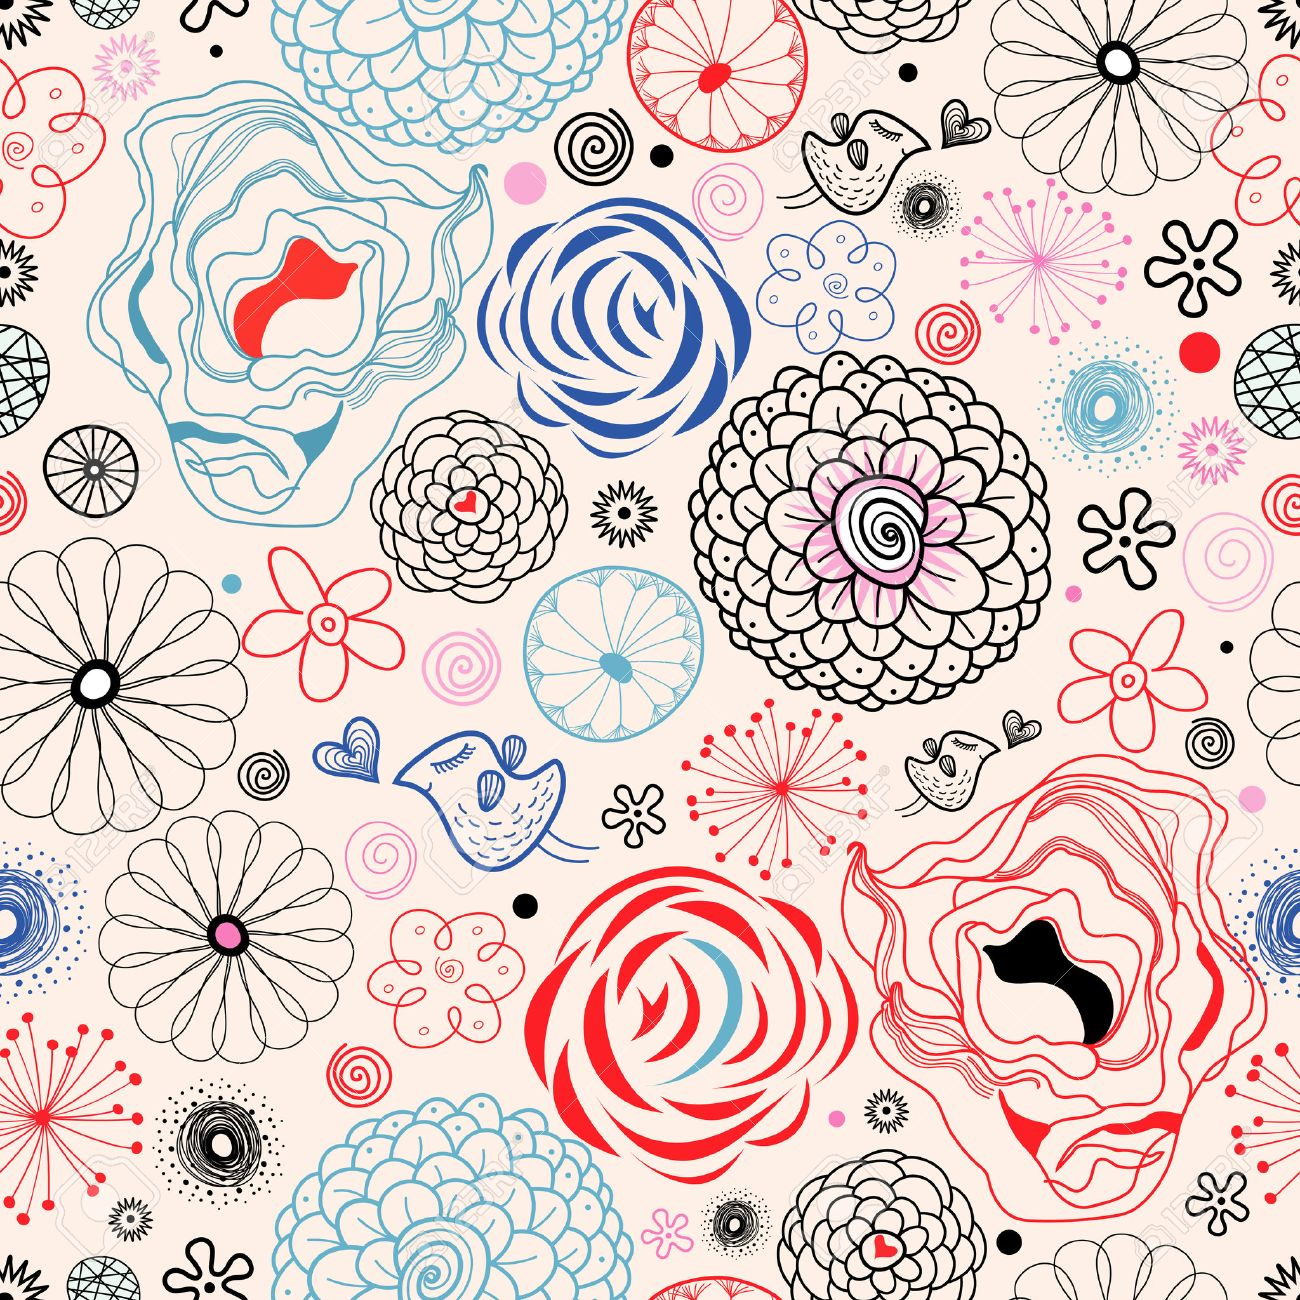 seamless graphic floral pattern with birds in love on a bright pink background - 24072321